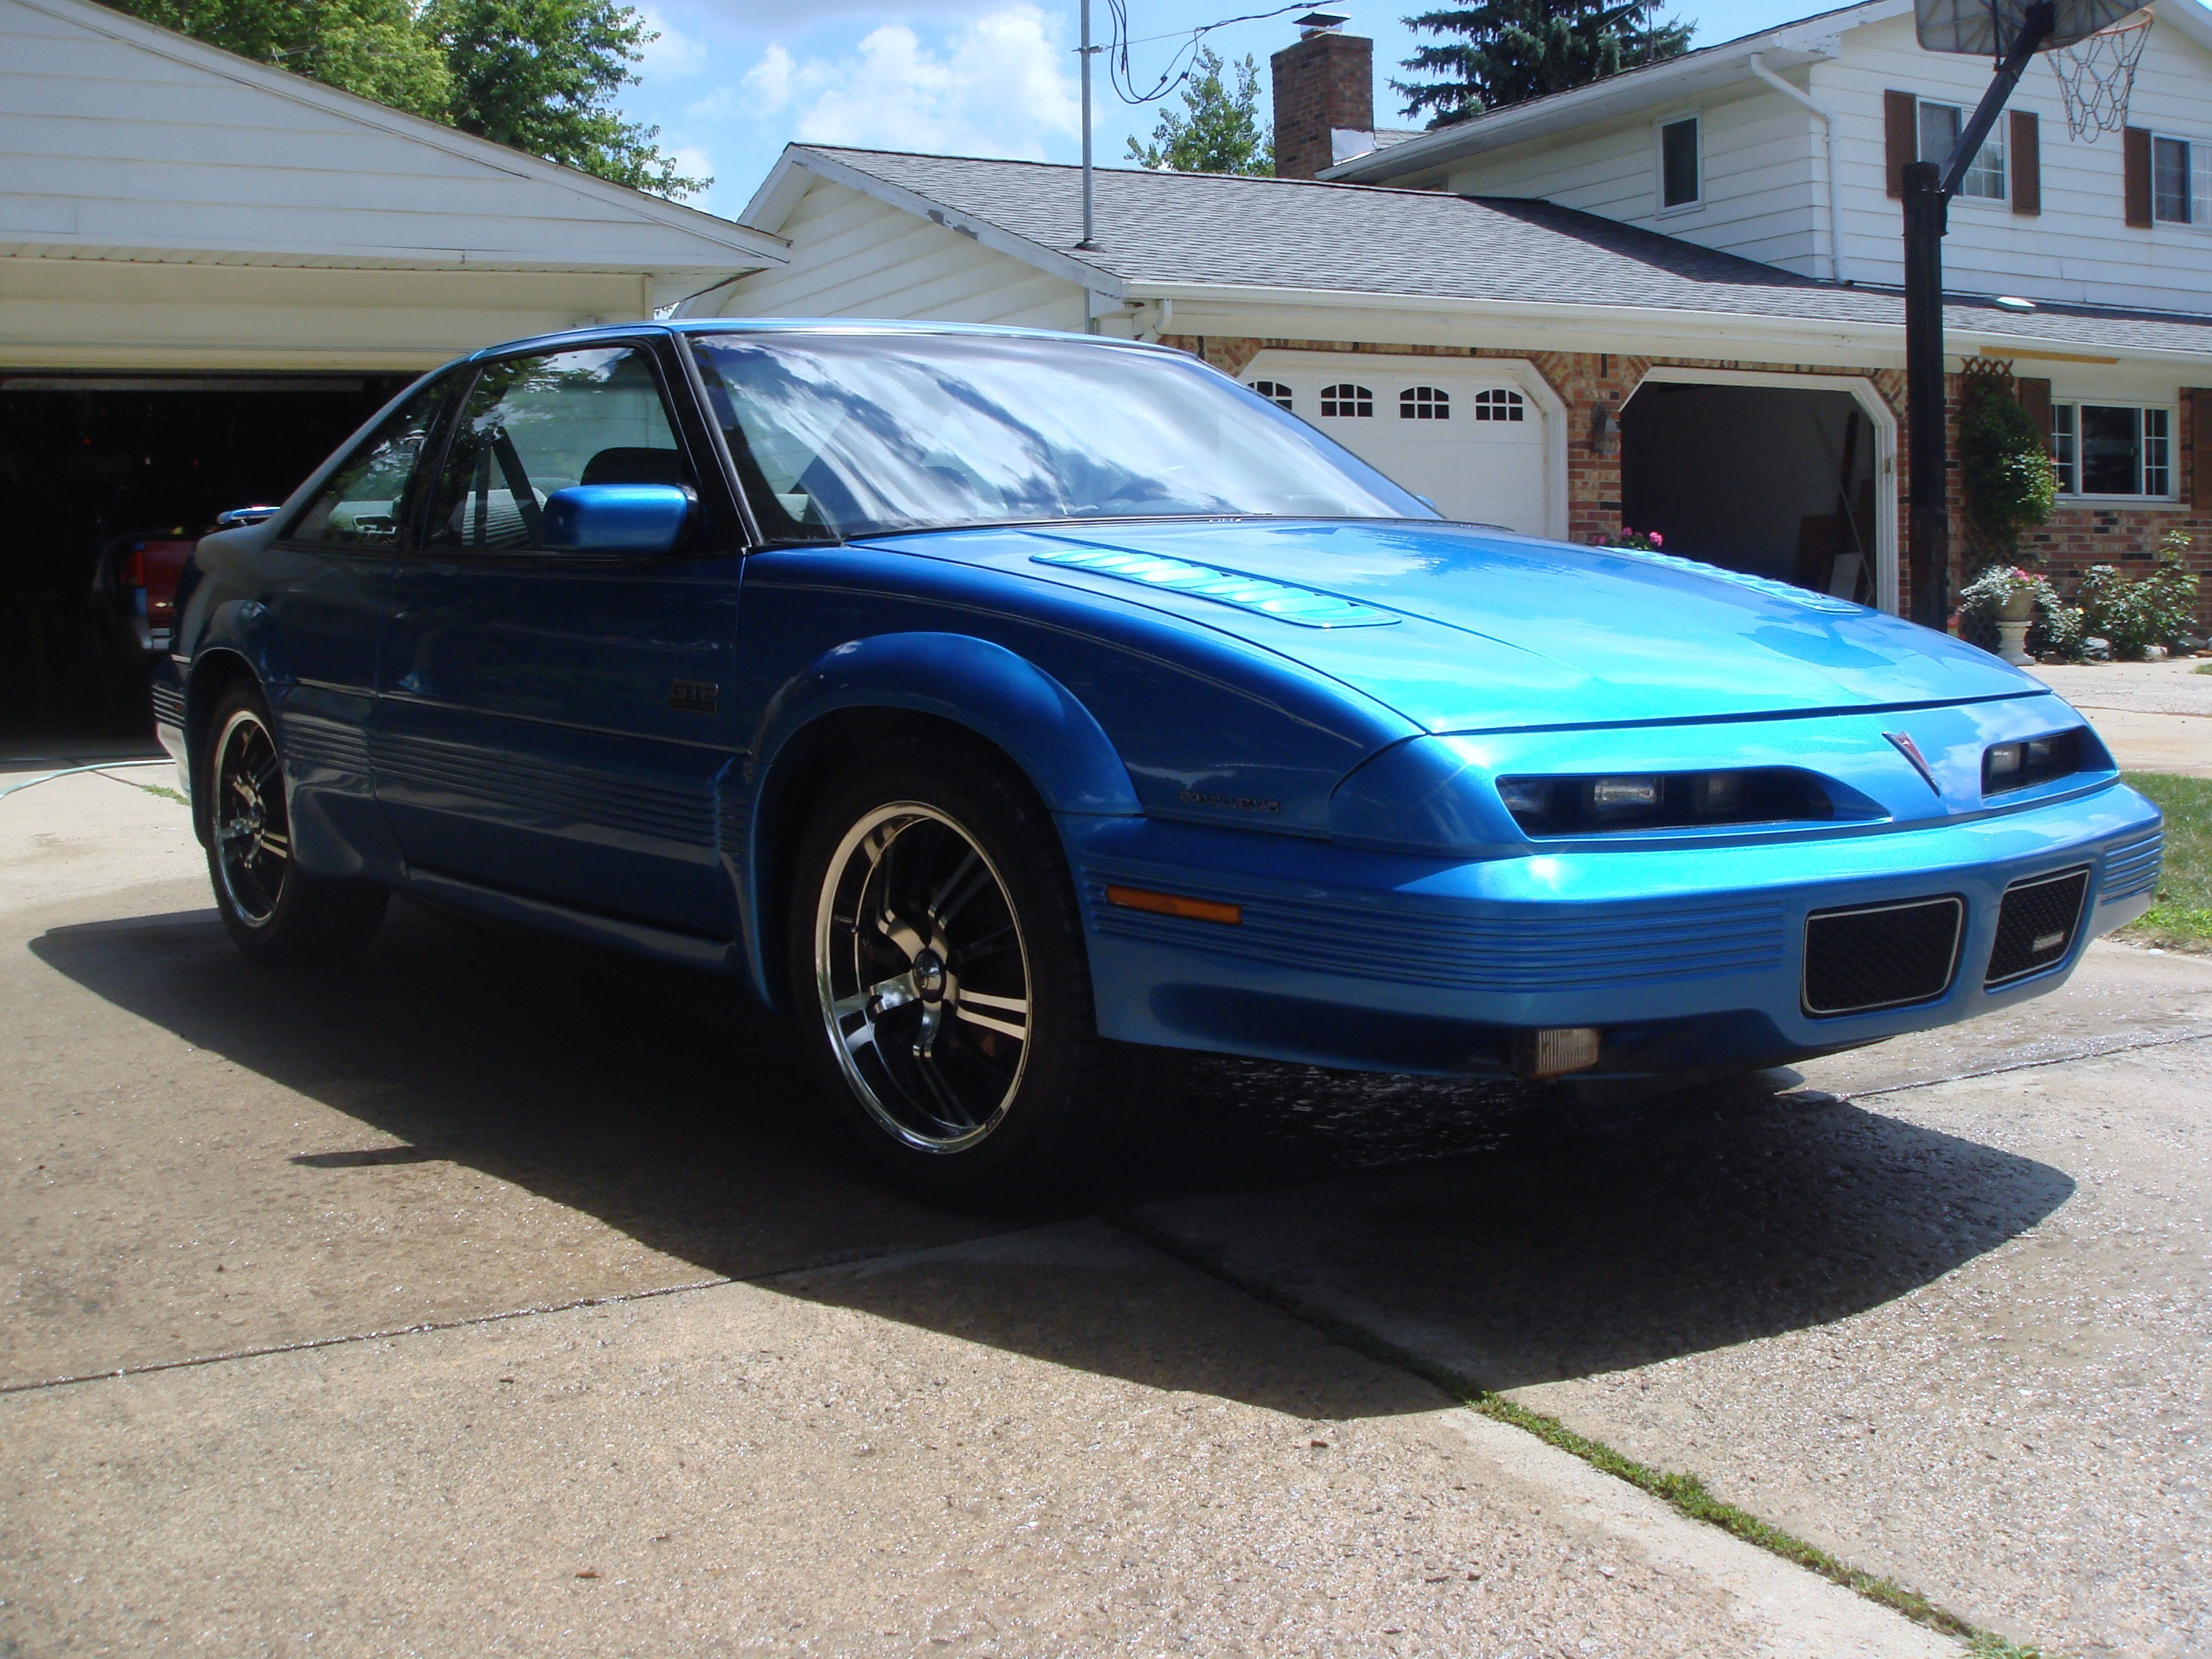 91 gtp 48473 1991 pontiac grand prix specs photos modification info at cardomain cardomain